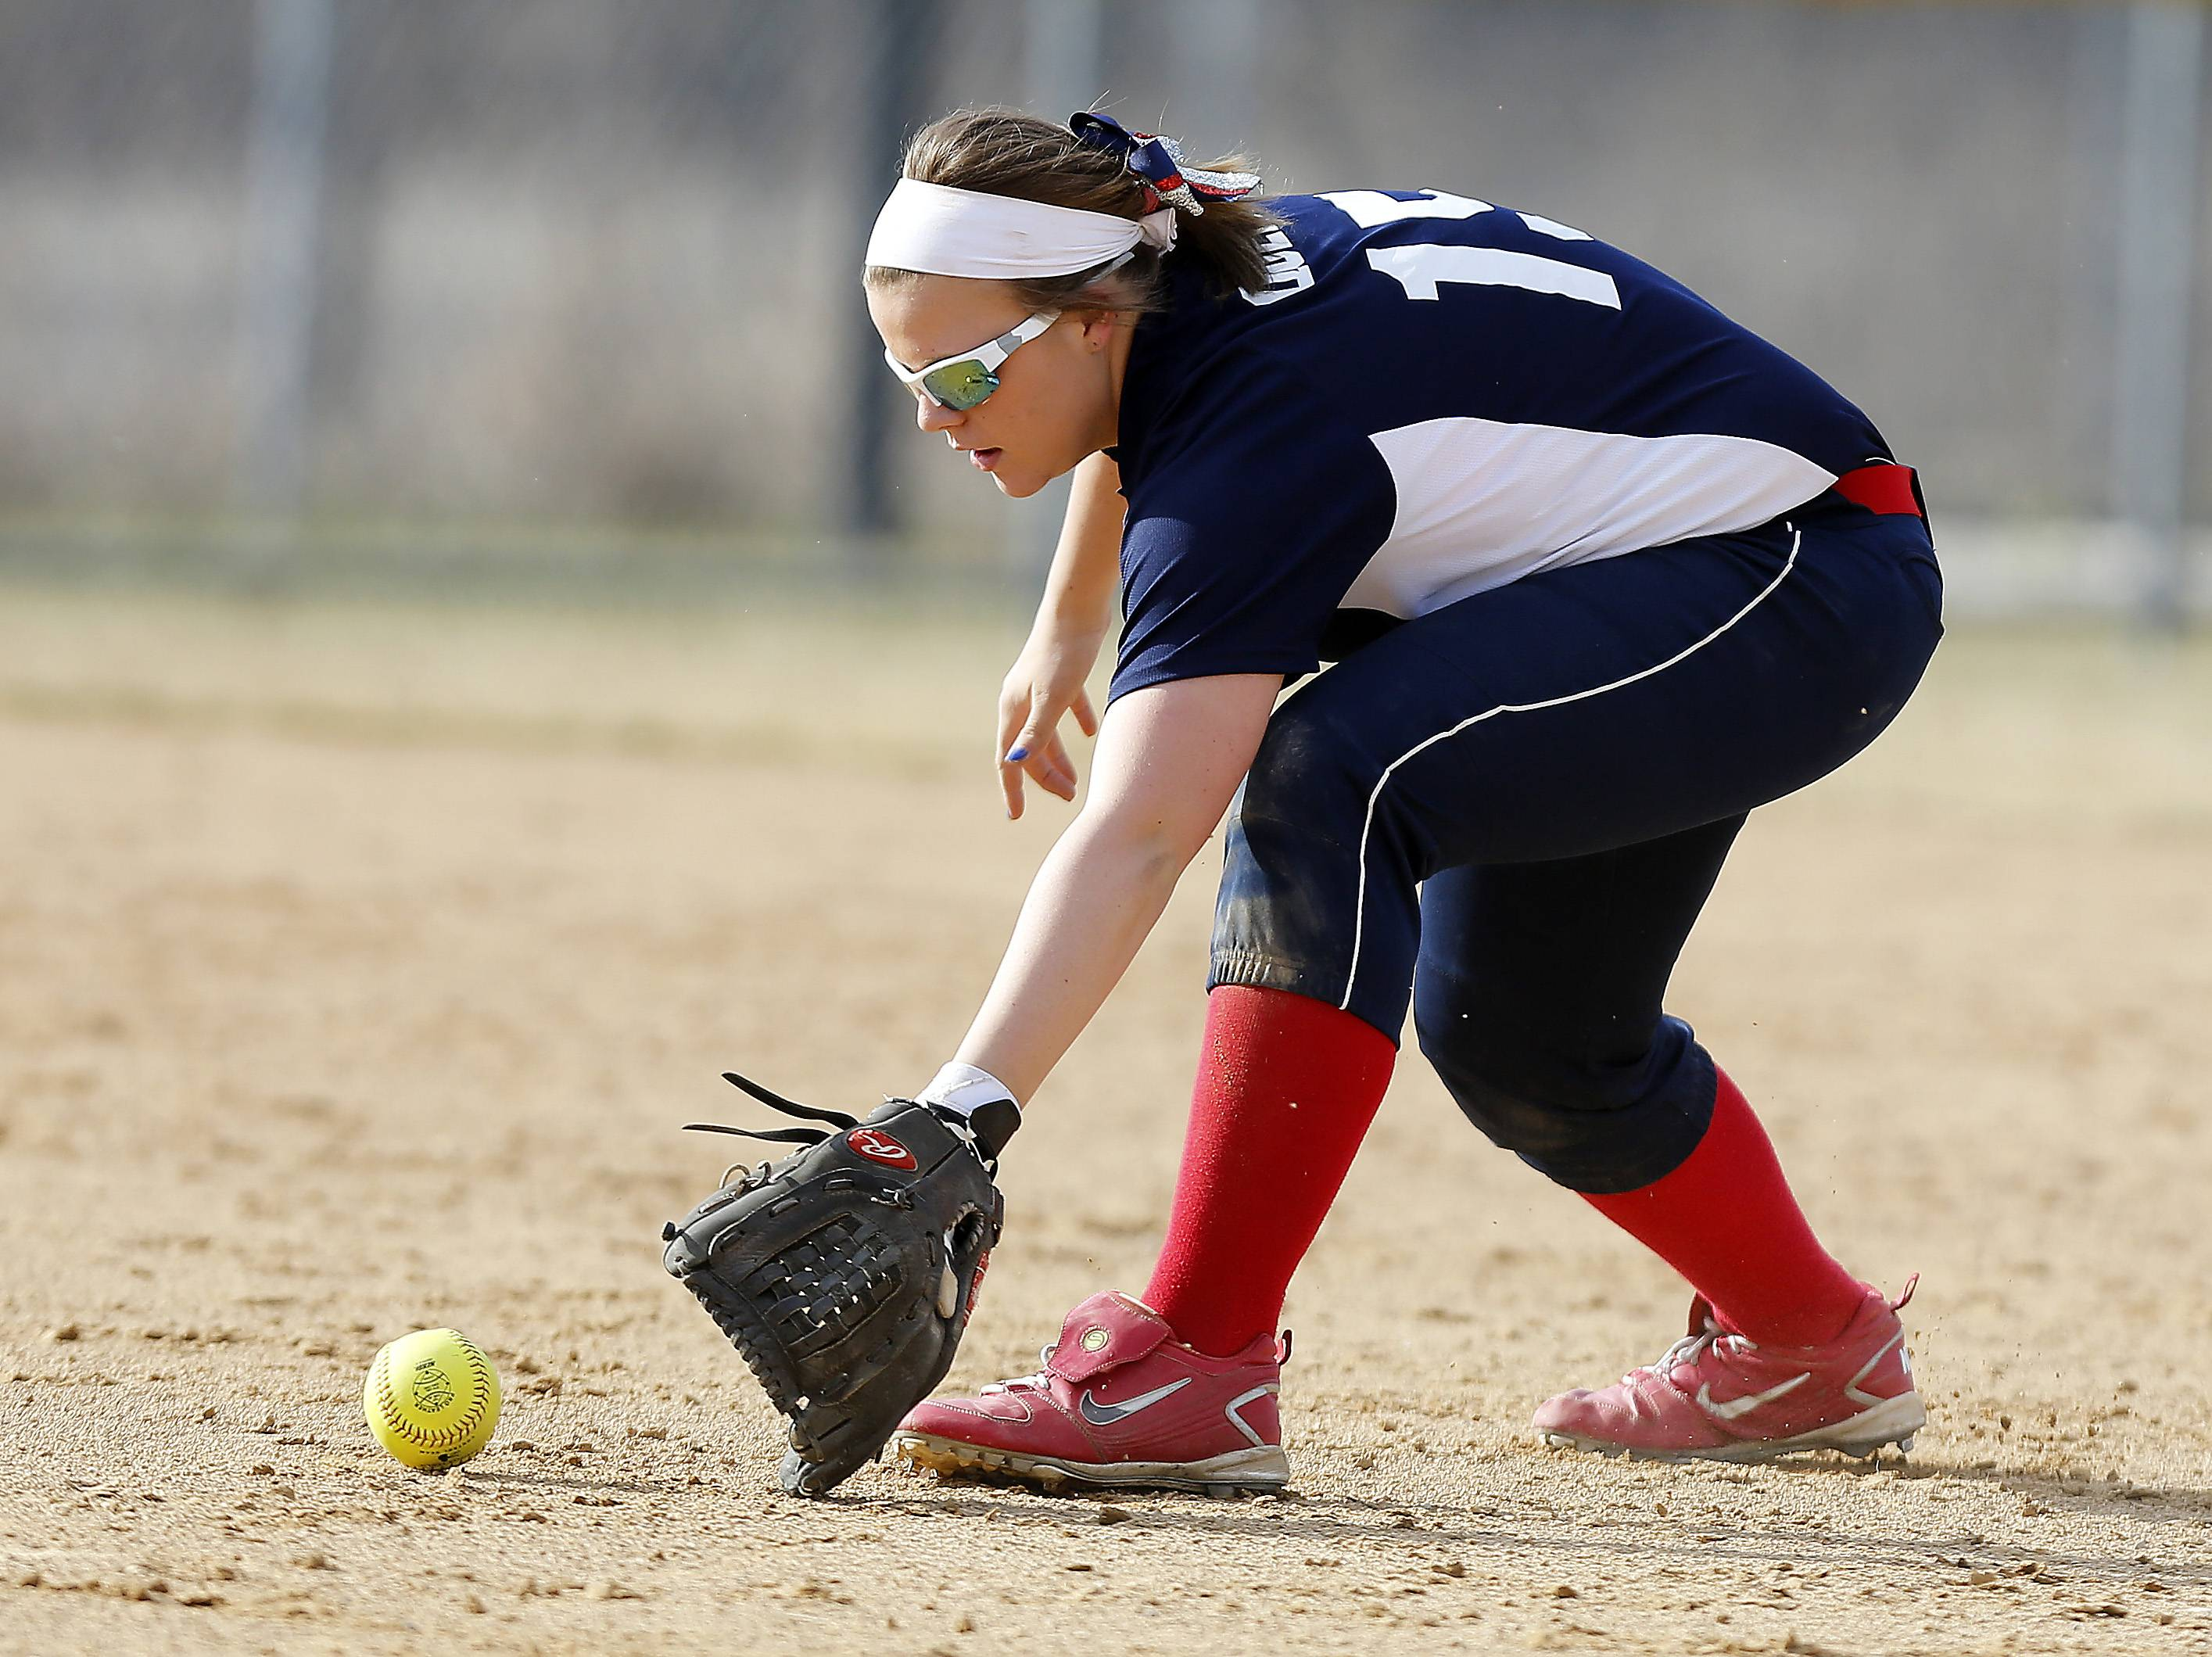 South Elgin's Demi Queen scoops up a grounder to throw out St. Charles North's Erin Nemetz during the second inning at South Elgin on Friday.